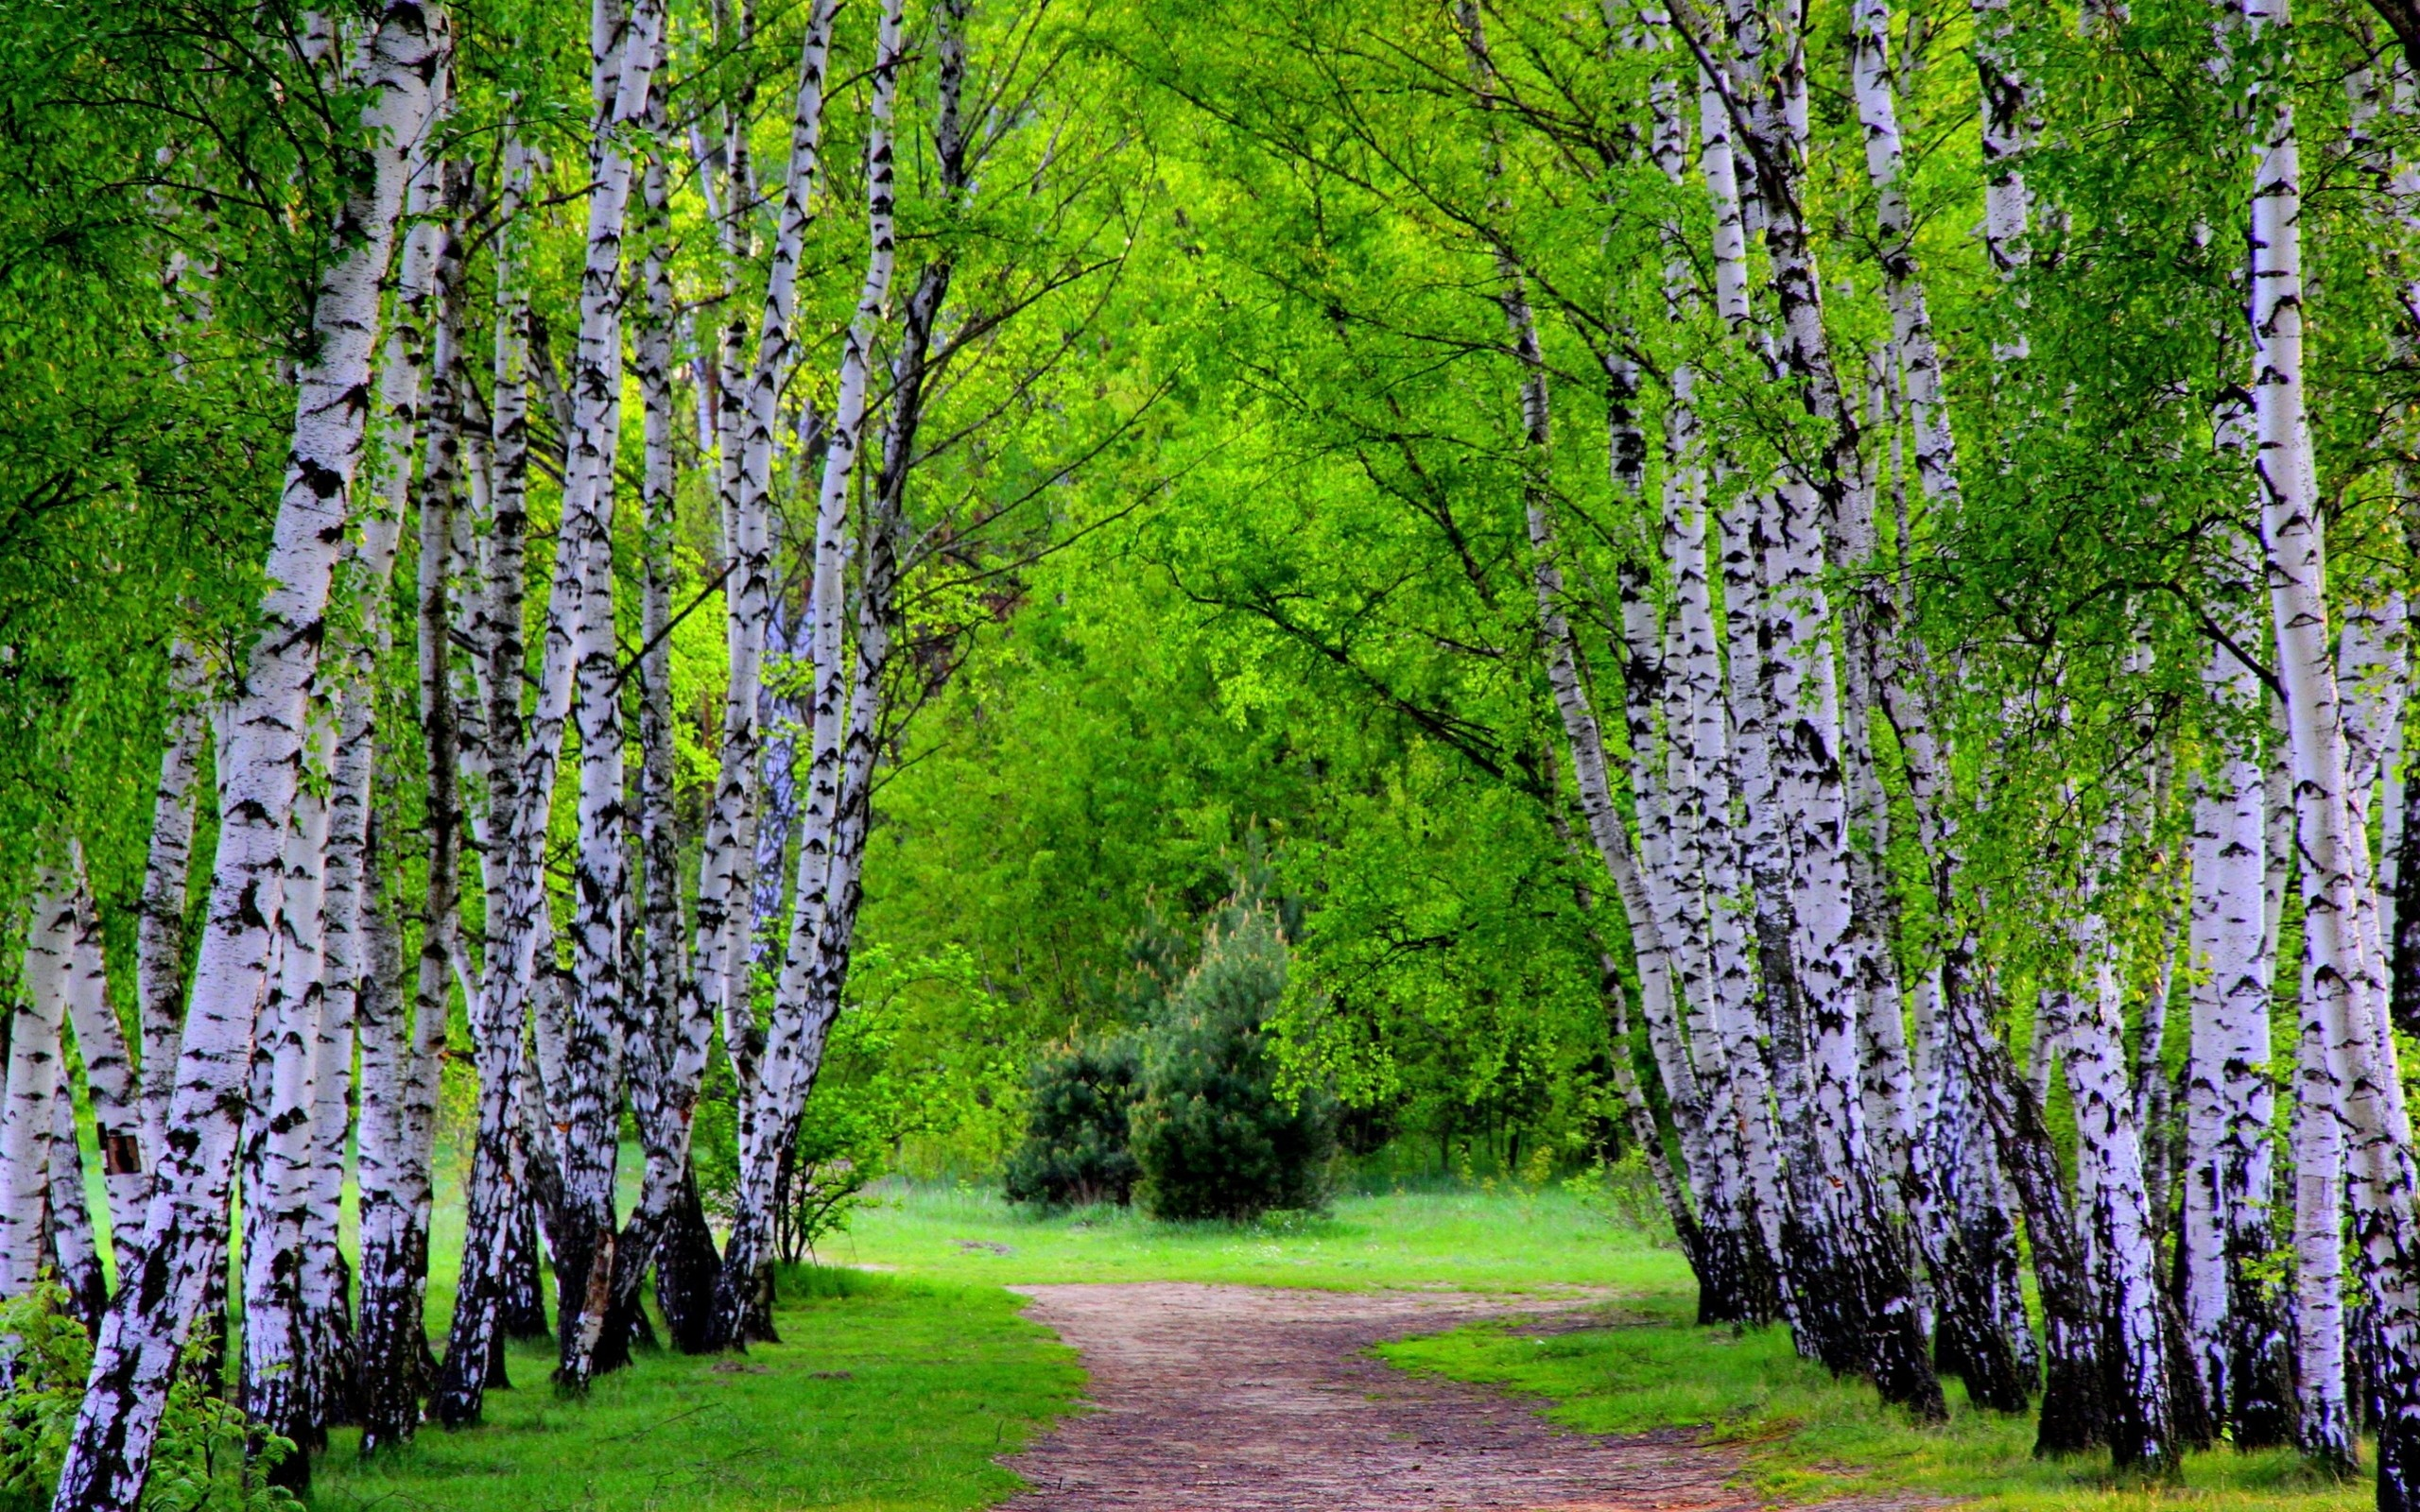 Res: 2560x1600, Alley of birch trees